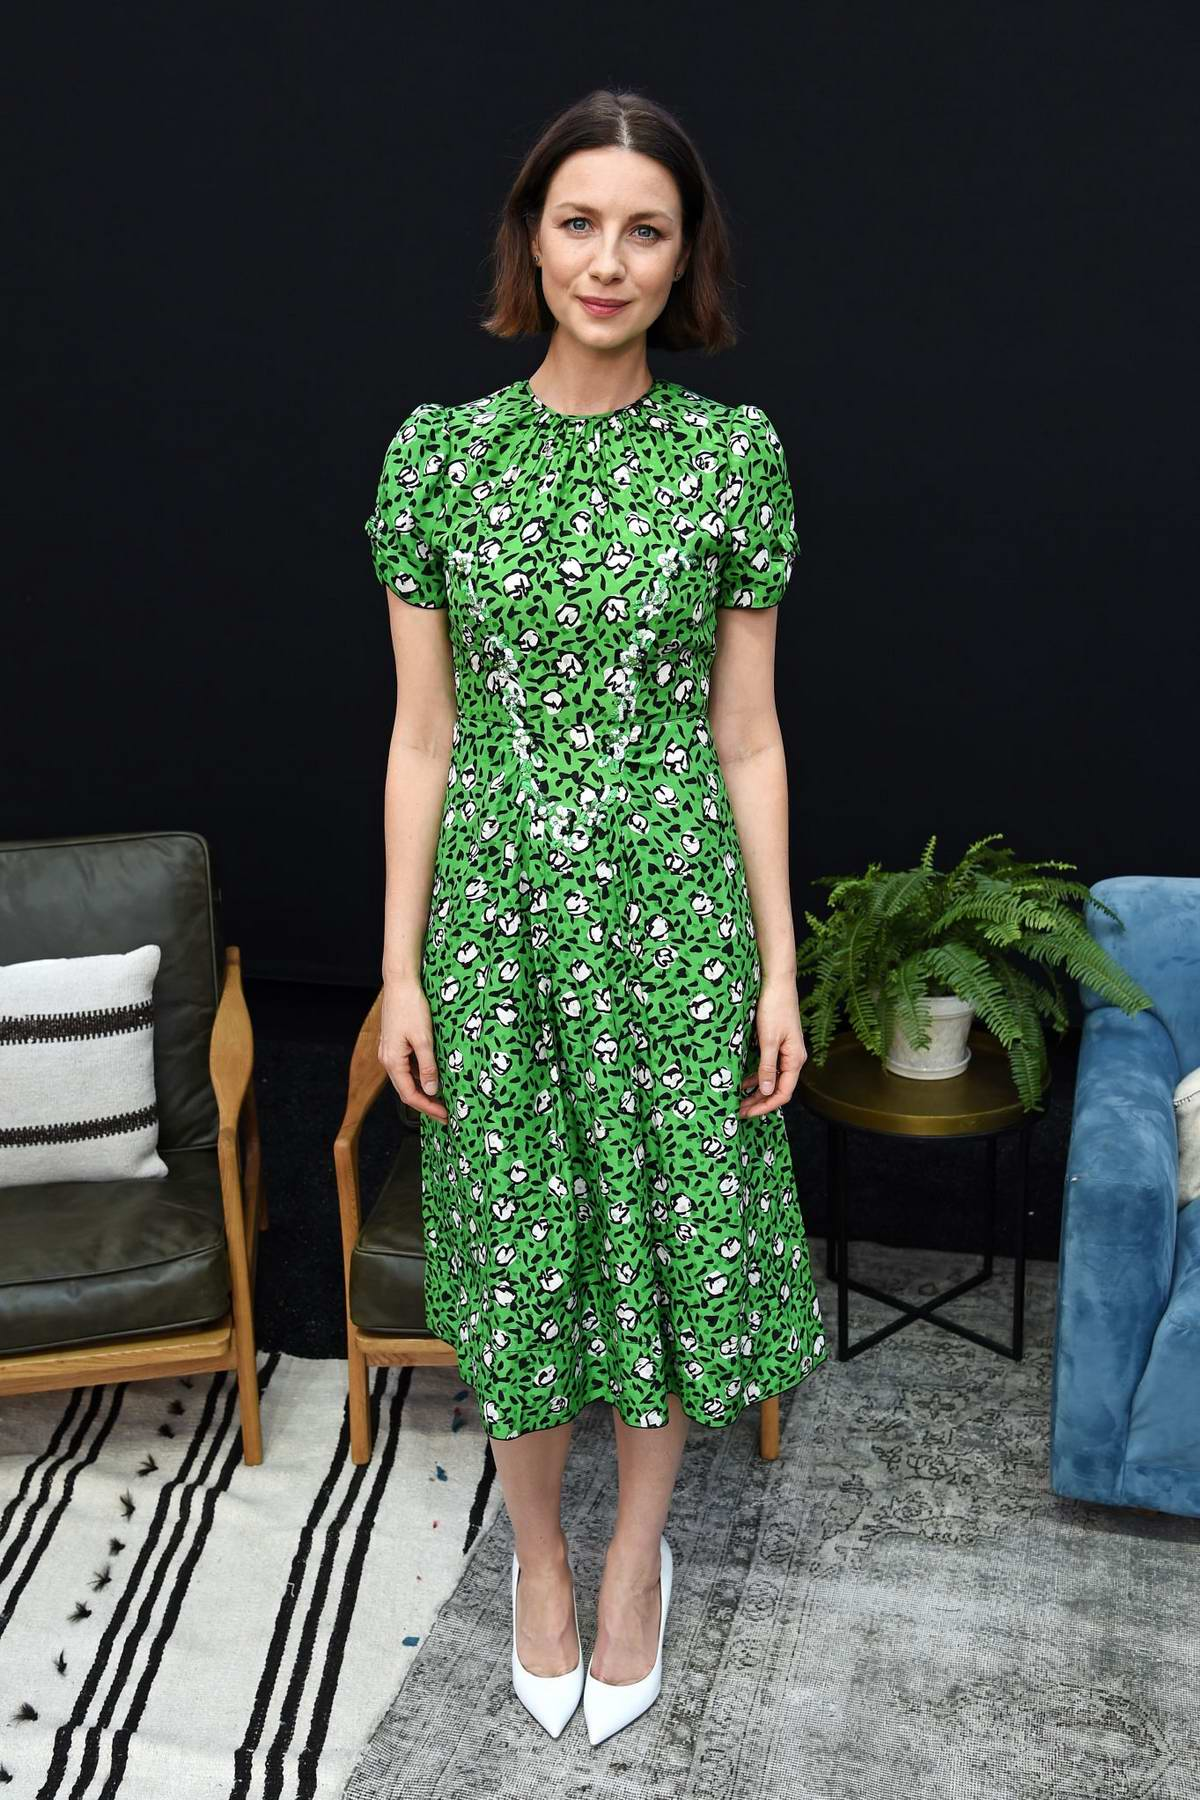 Caitriona Balfe attends Starz FYC 2019 Where Creativity, Culture and Conversations Collide at Westfield Century City, California